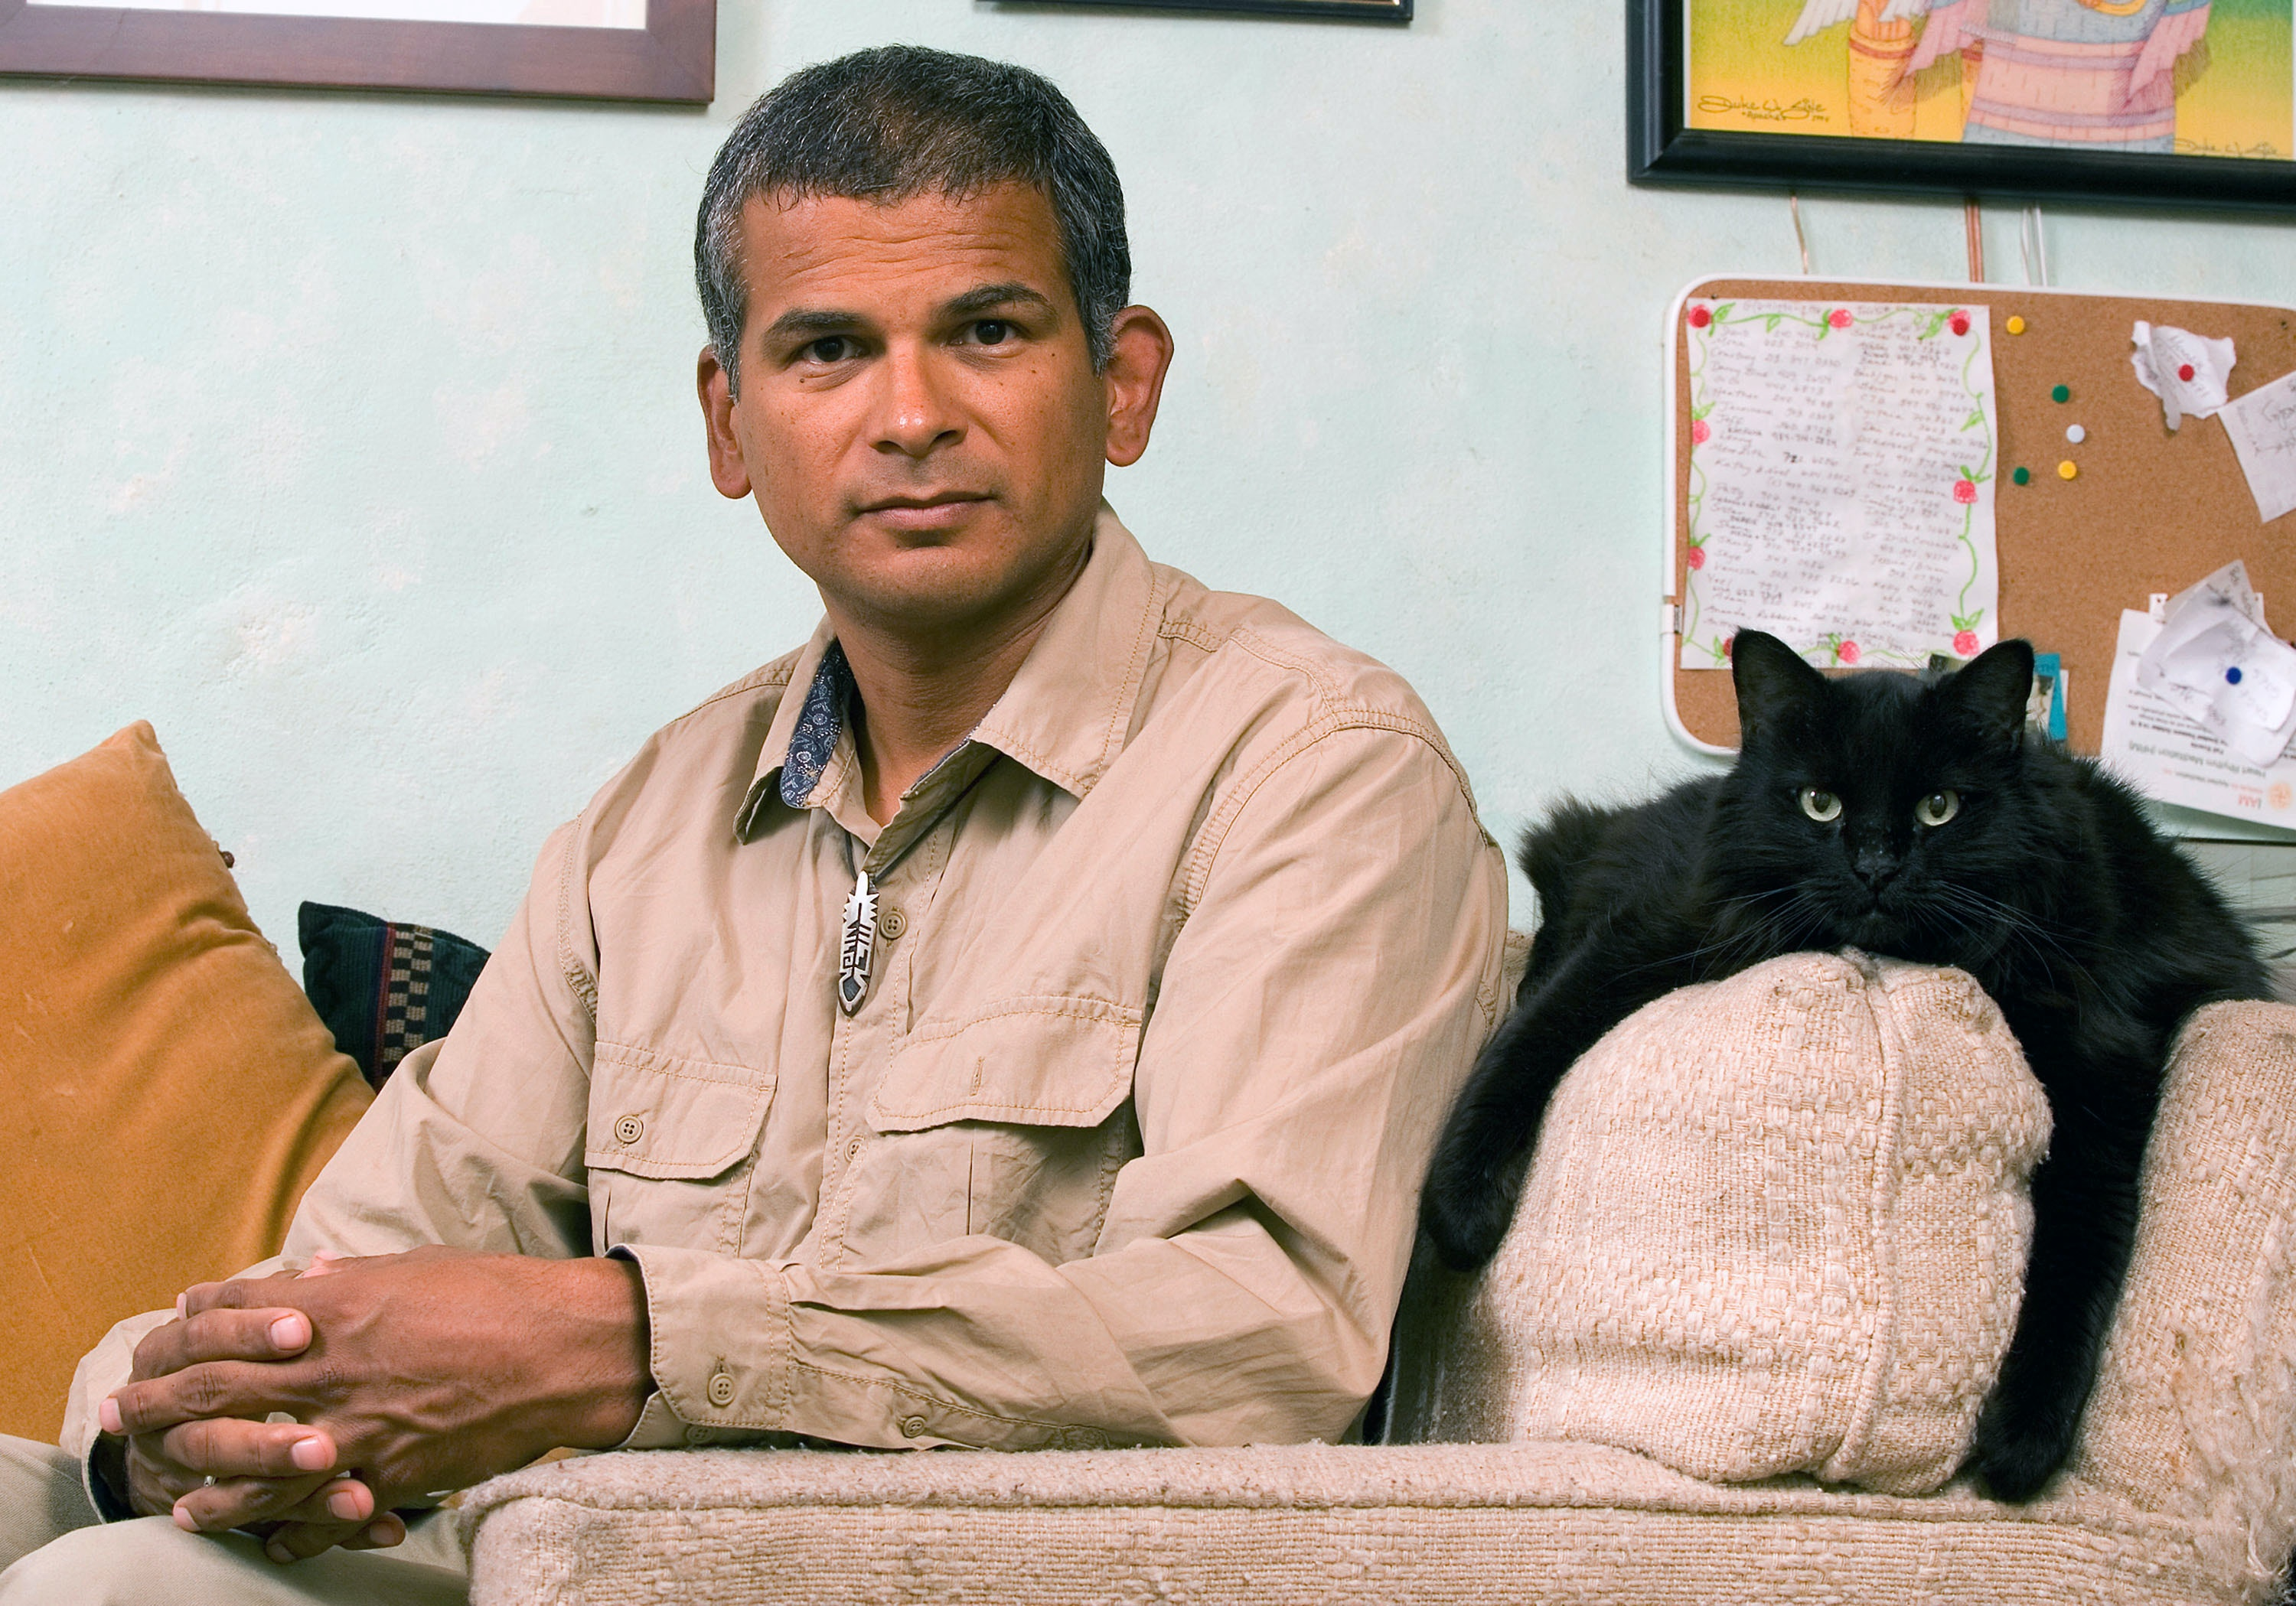 Rod Coronado poses with his cat, Nau, in his home in Tucson, Ariz. Thursday, Aug. 23, 2007. Coronado thinks of himself as an environmentalist, while others would prefer the term eco-terrorist. Renowned for helping sink whaling ships in the North Atlantic and firebombing a Michigan animal-research facility, he toured the country after prison time telling others how to make do-it-yourself Molotov cocktails.  (AP Photo/John Miller)